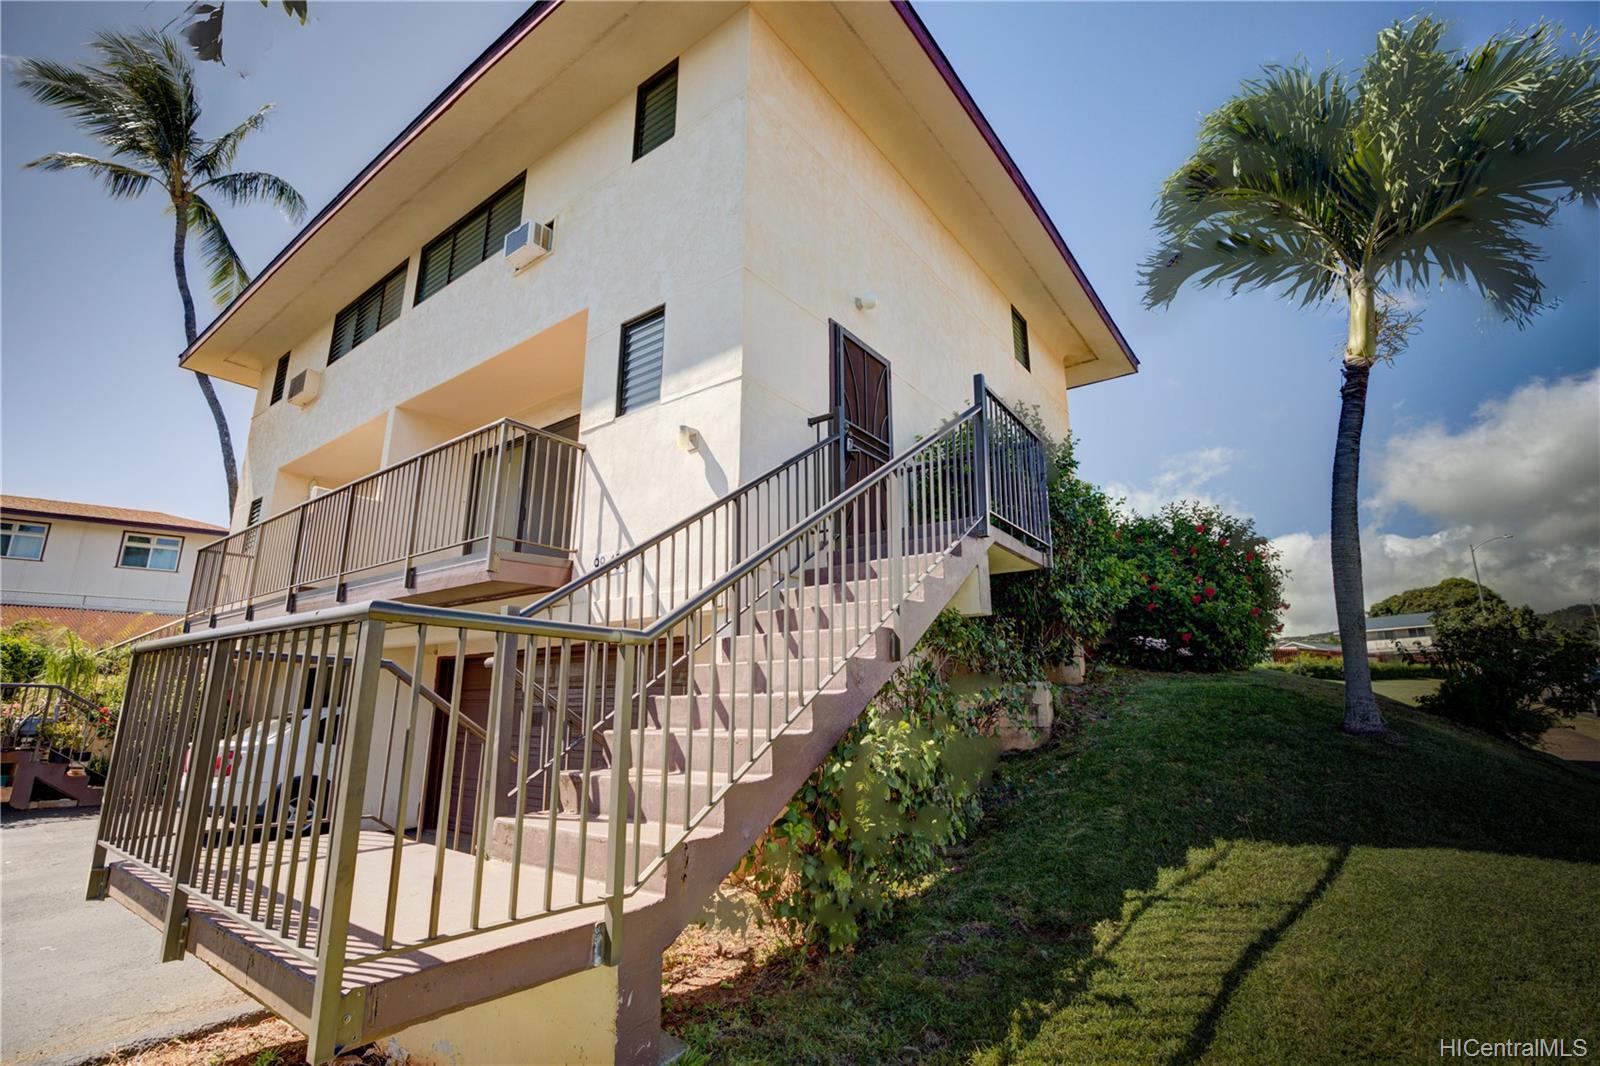 98-436 Kaonohi Street townhouse # 22/480, Aiea, Hawaii - photo 21 of 24